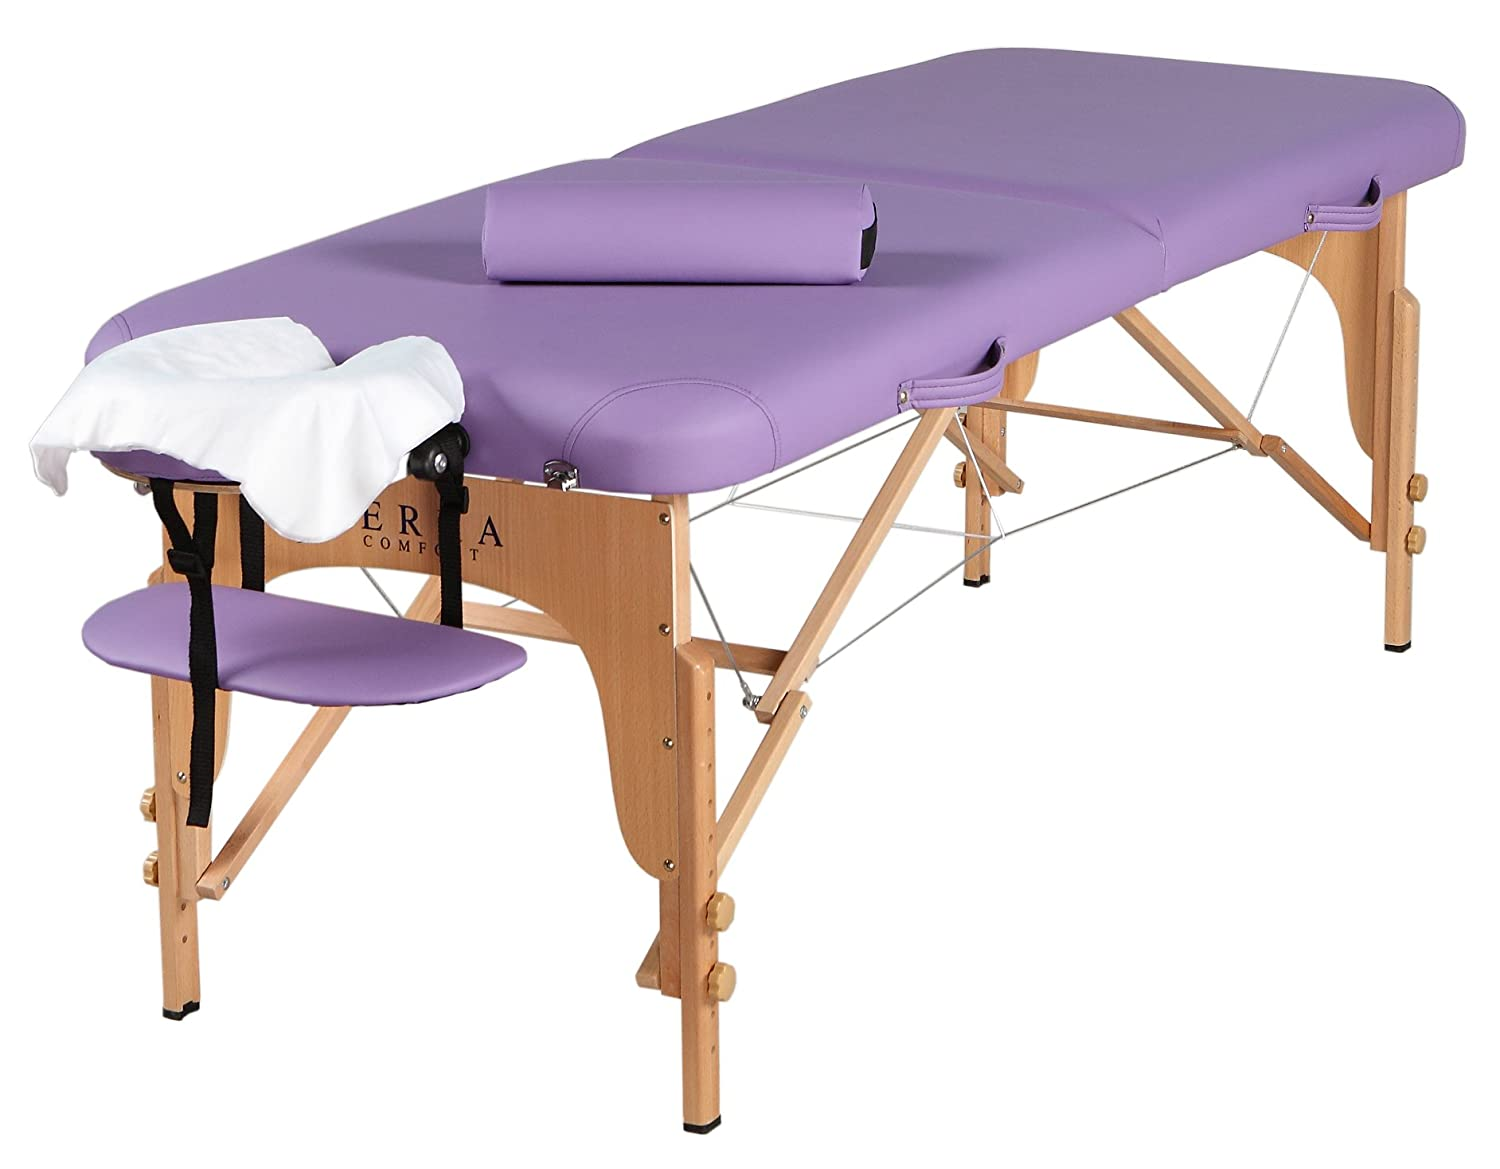 Sierra Comfort Professional Series Portable Massage Table, Purple SC-601-PURPLE